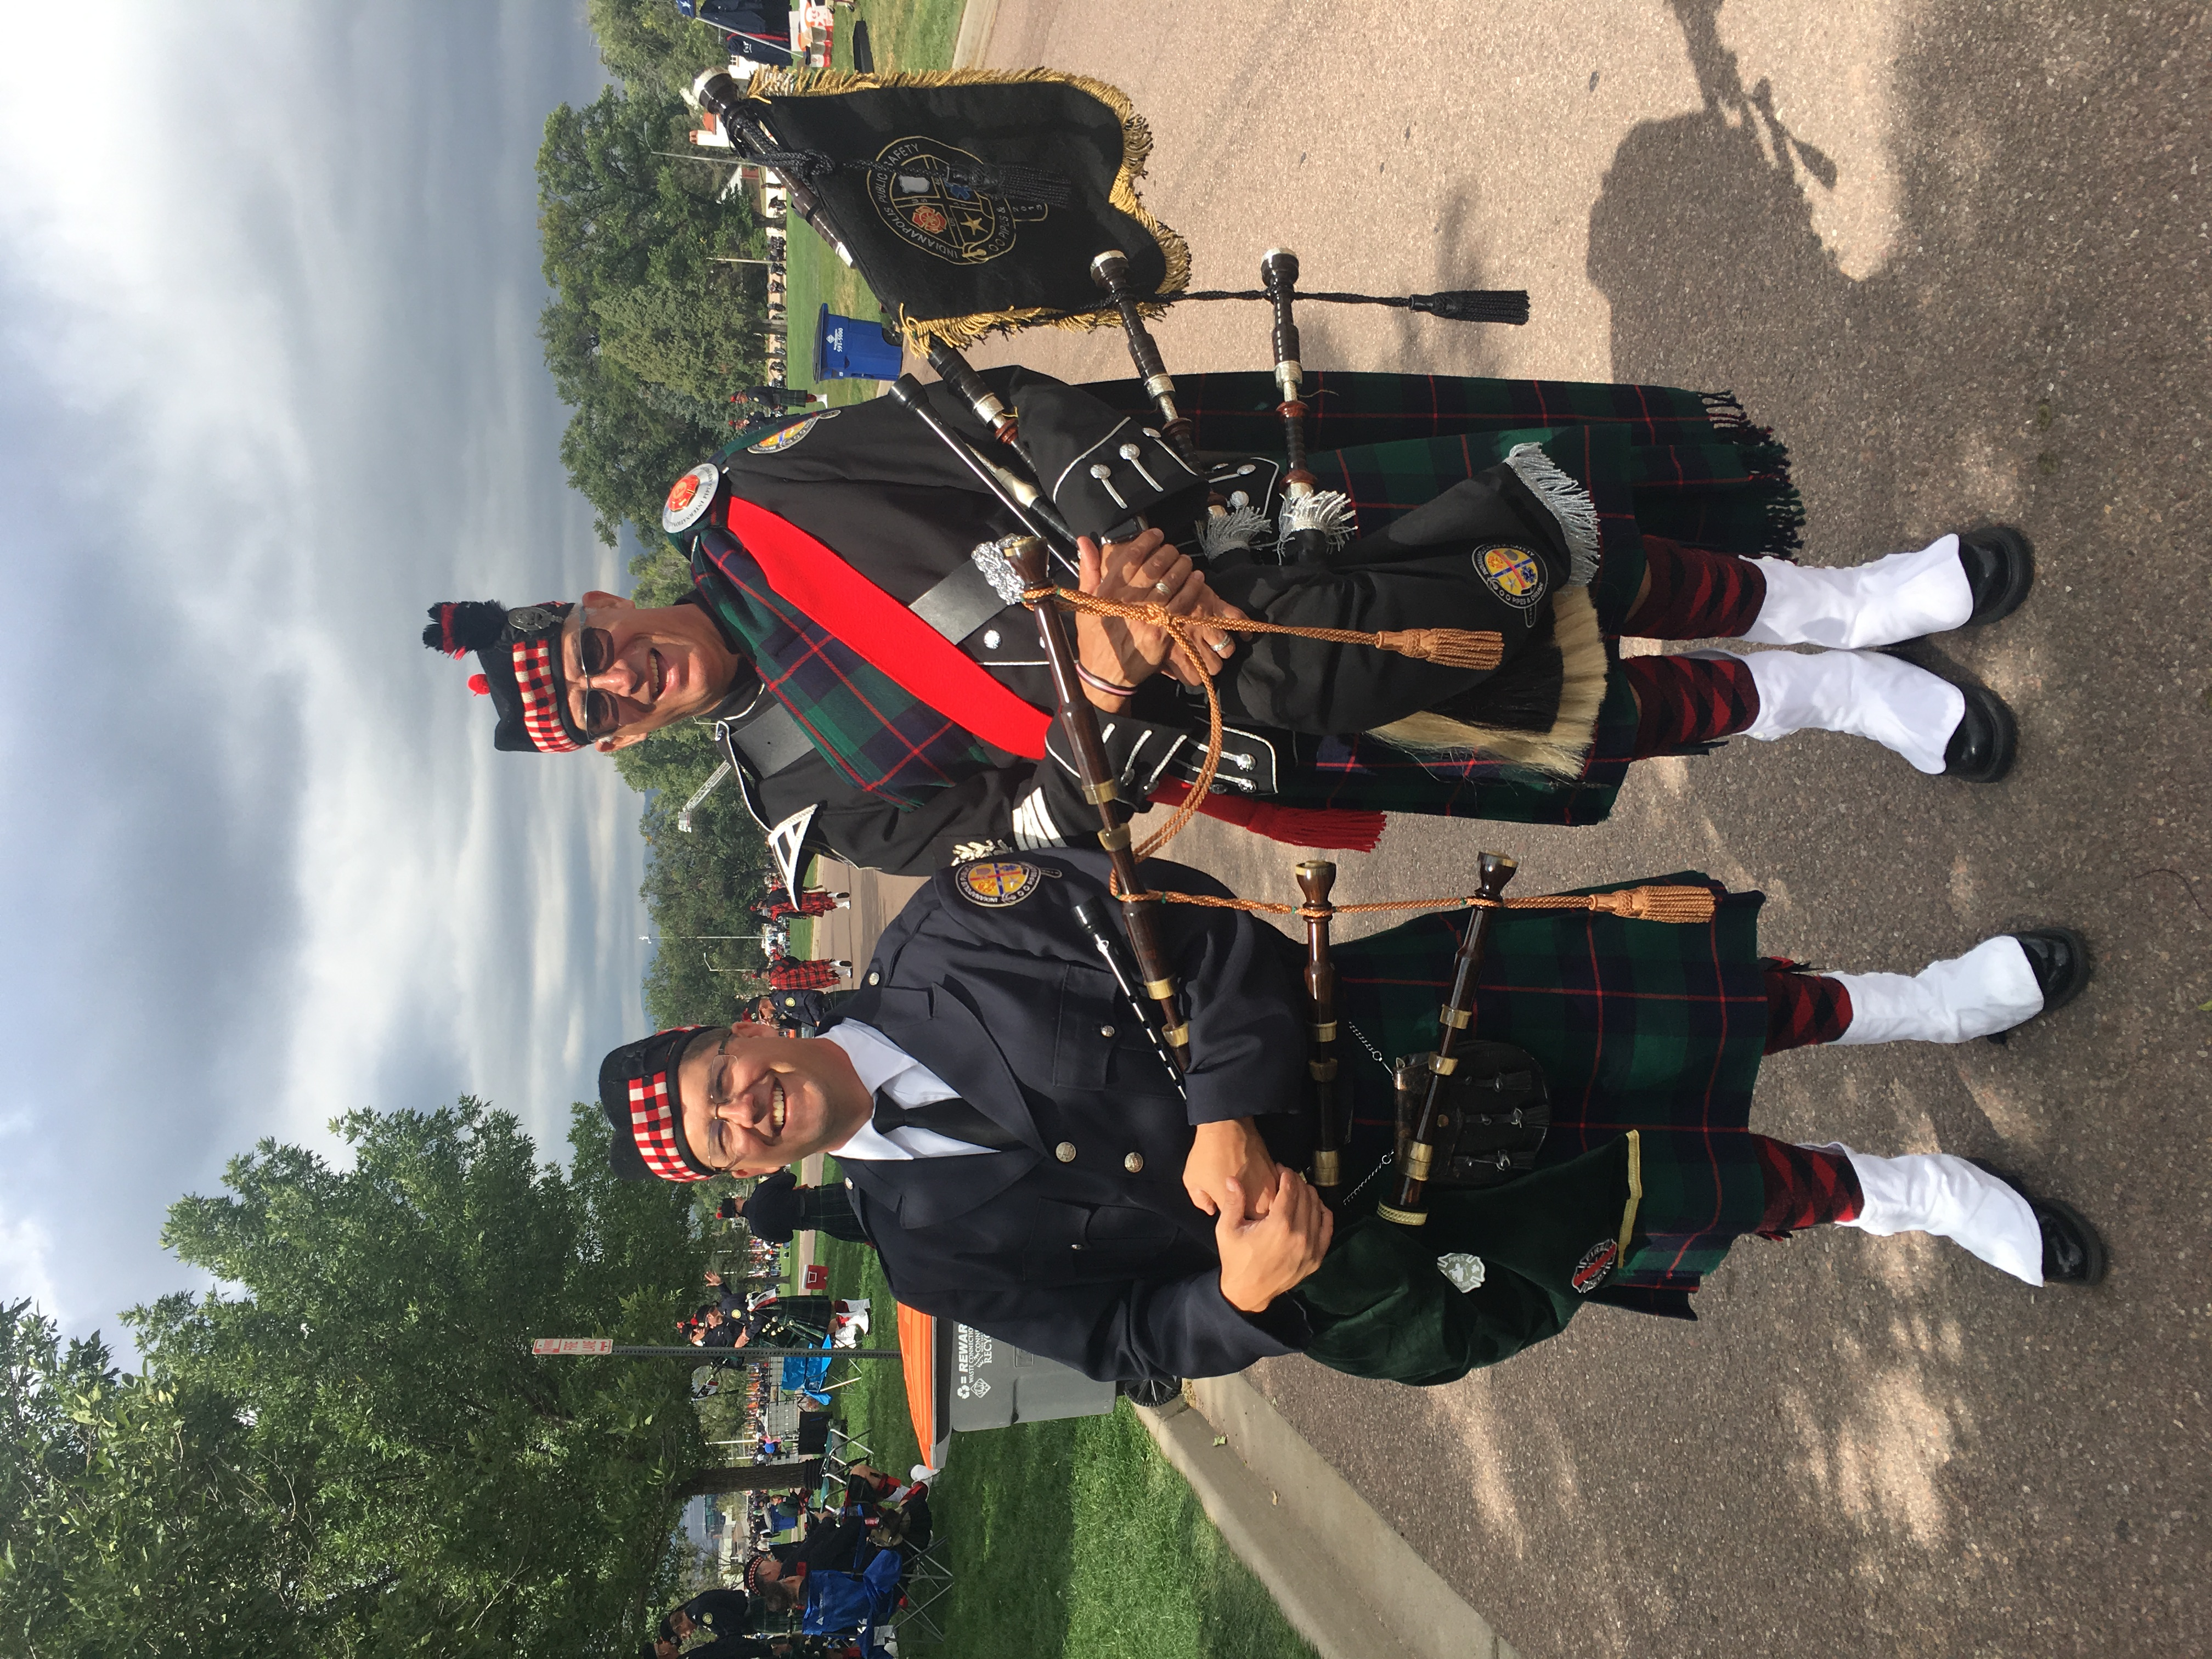 IAFF Fallen Firefighter Memorial – Indianapolis Public Safety Pipes and Drums